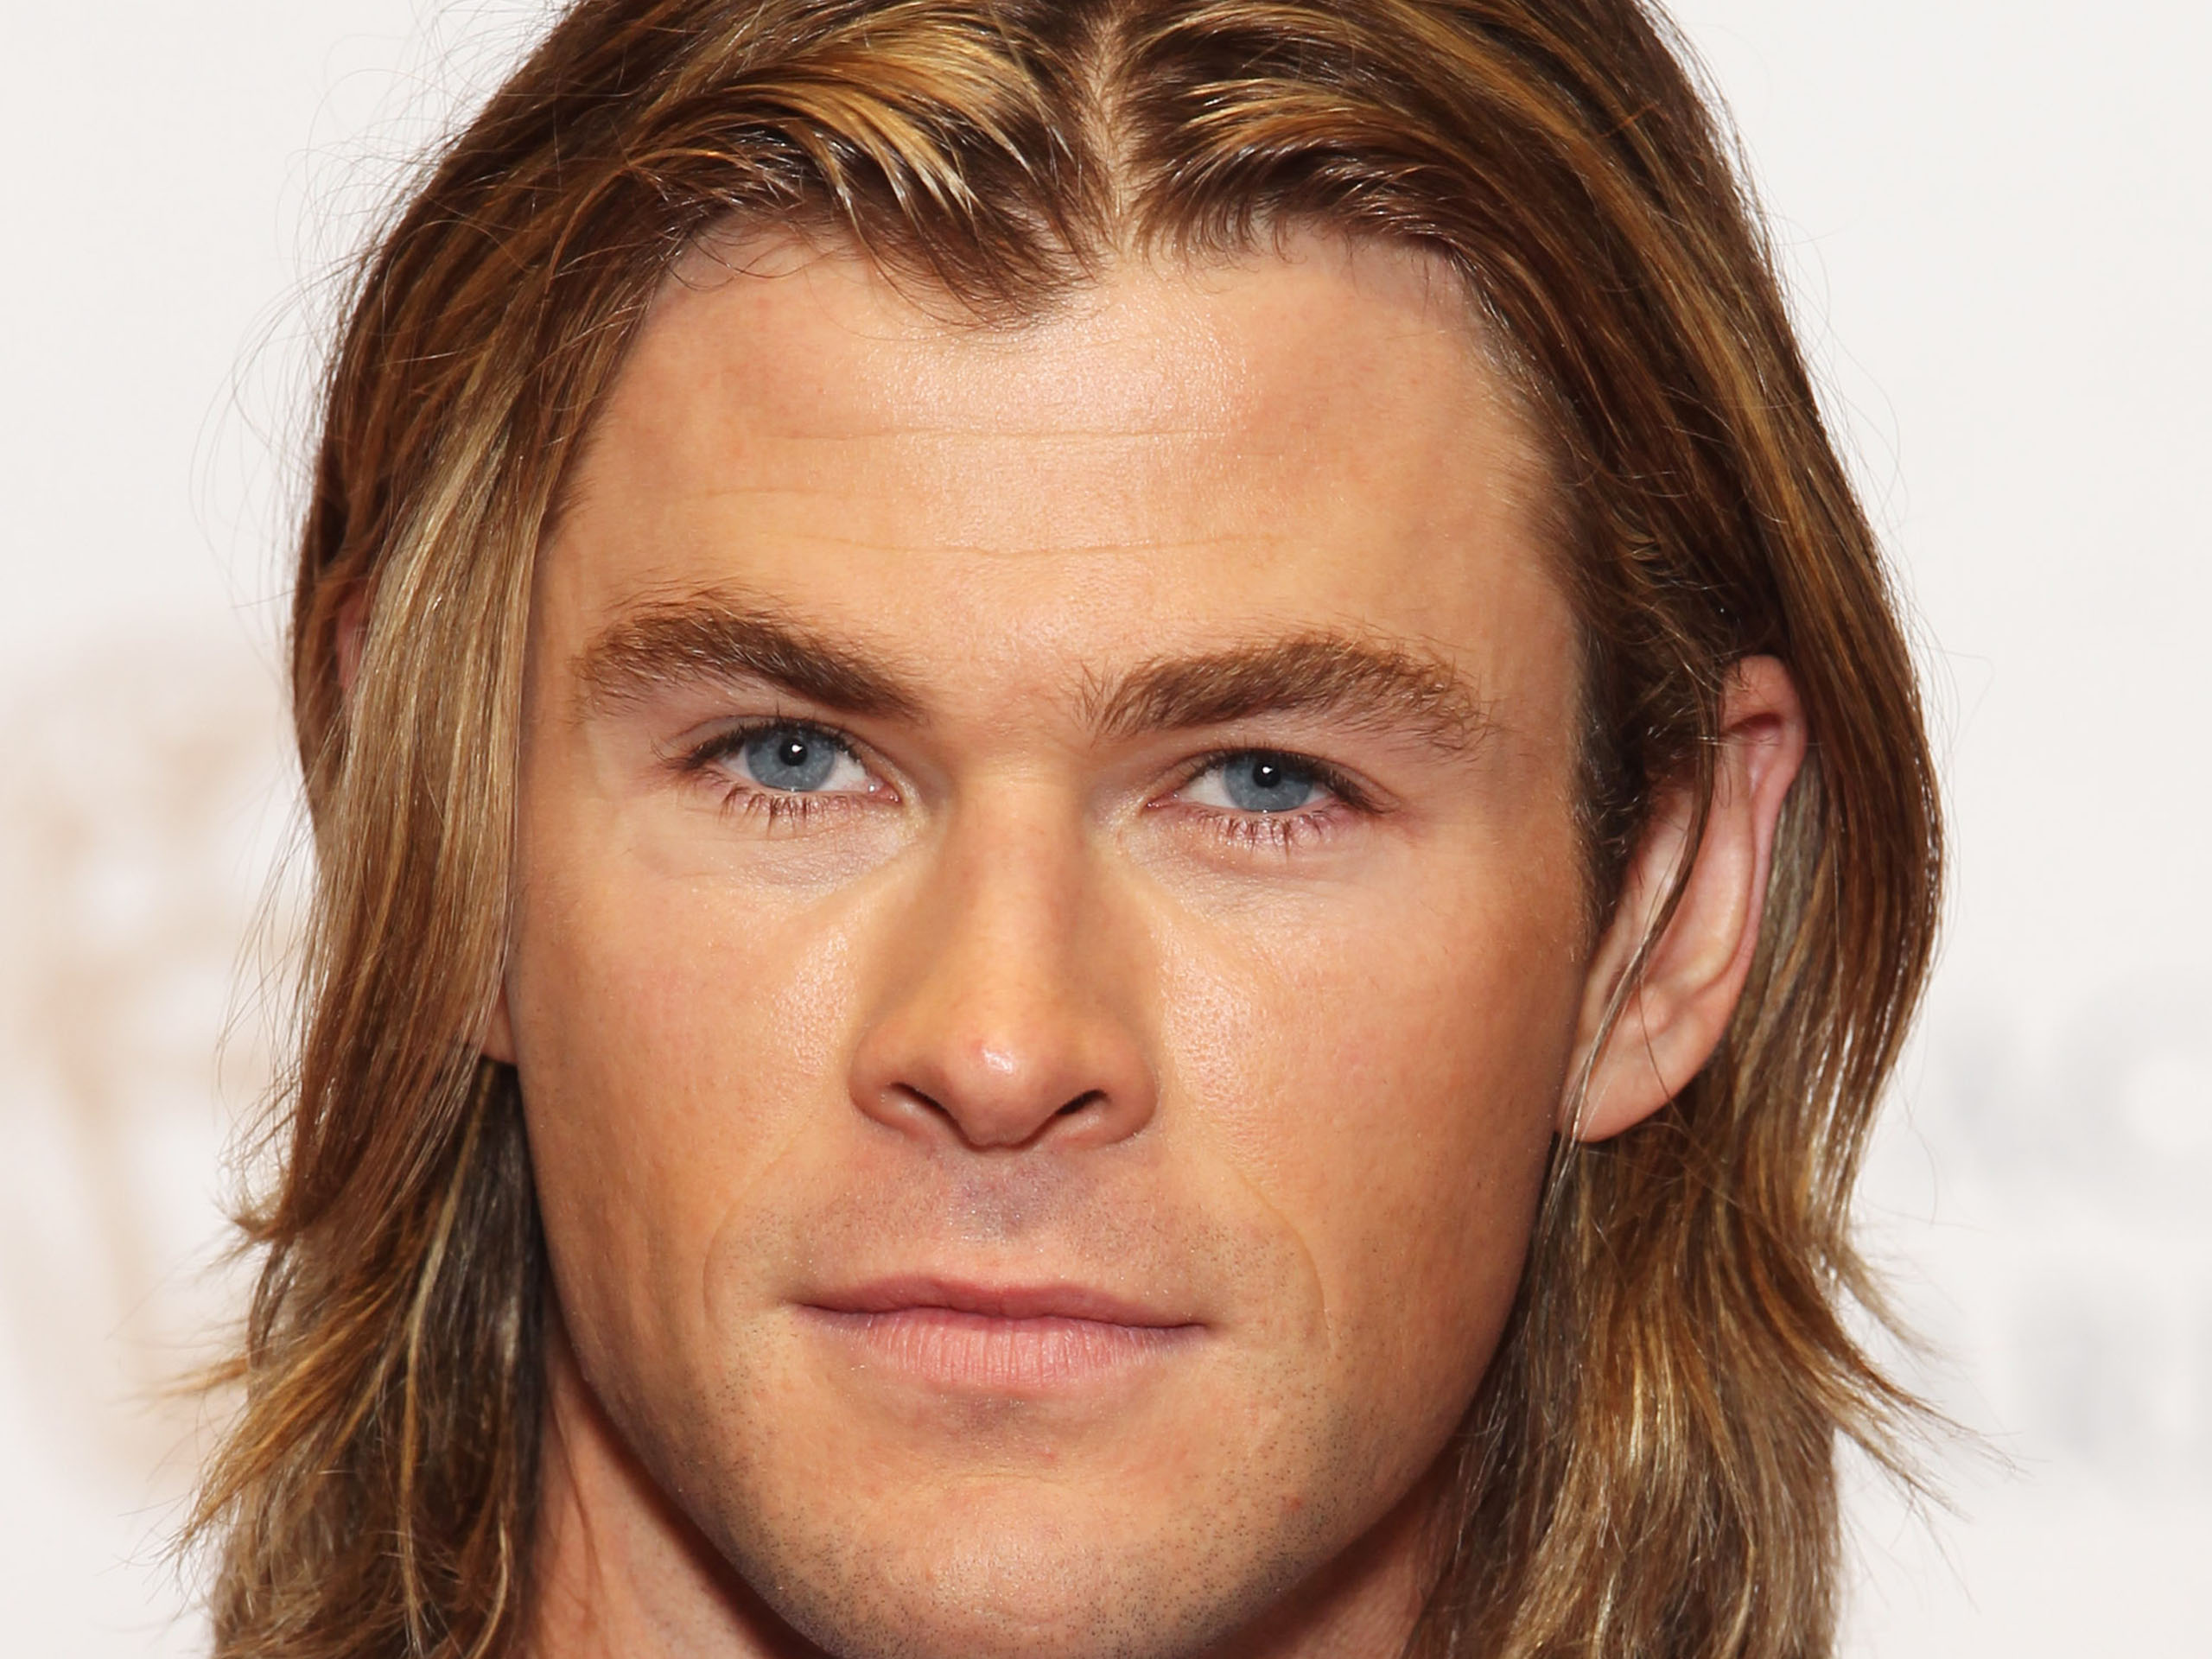 Chris Hemsworth Blue Eyes 40398 Hi-Resolution